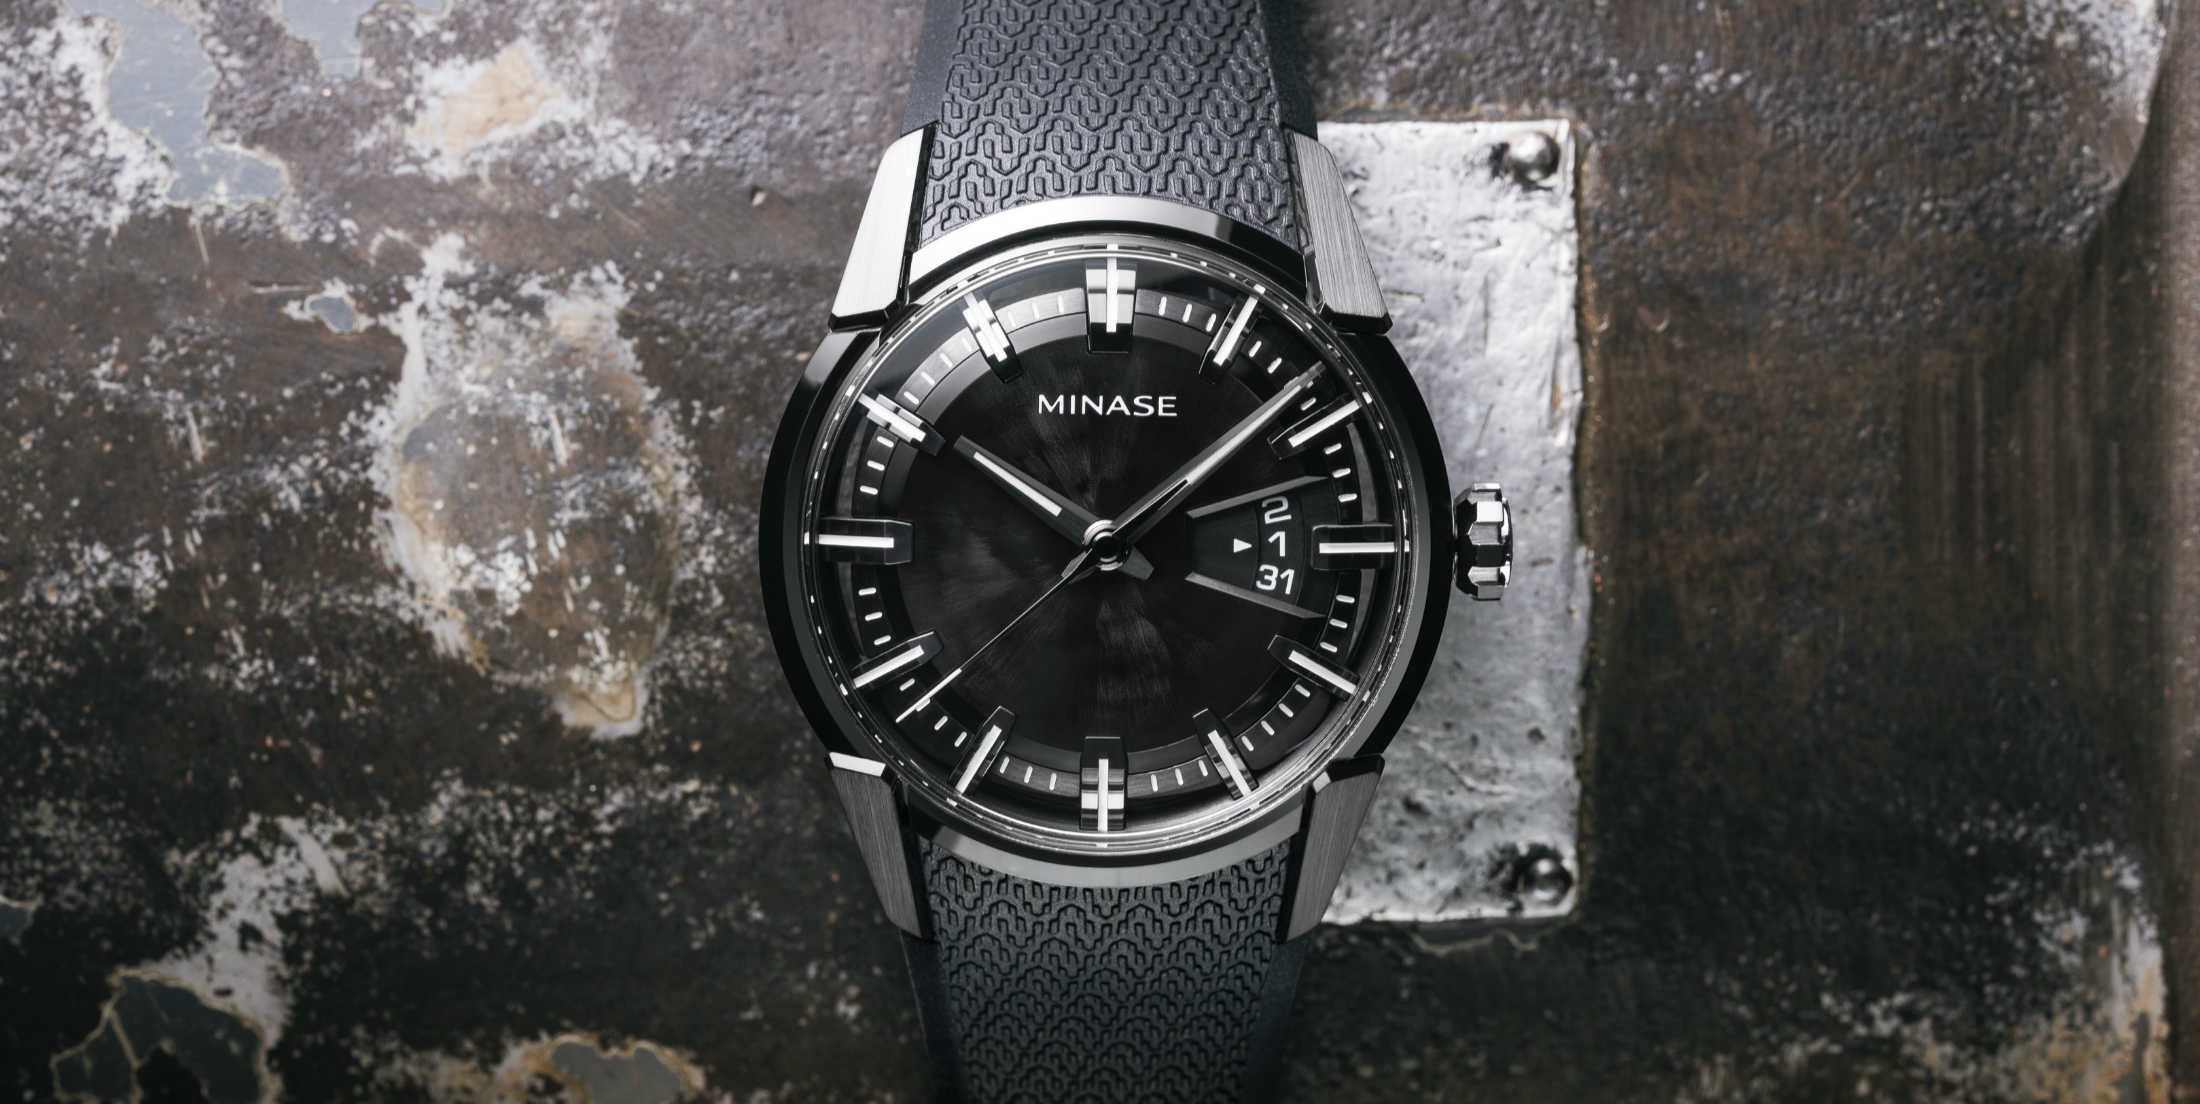 Minase Divido watch